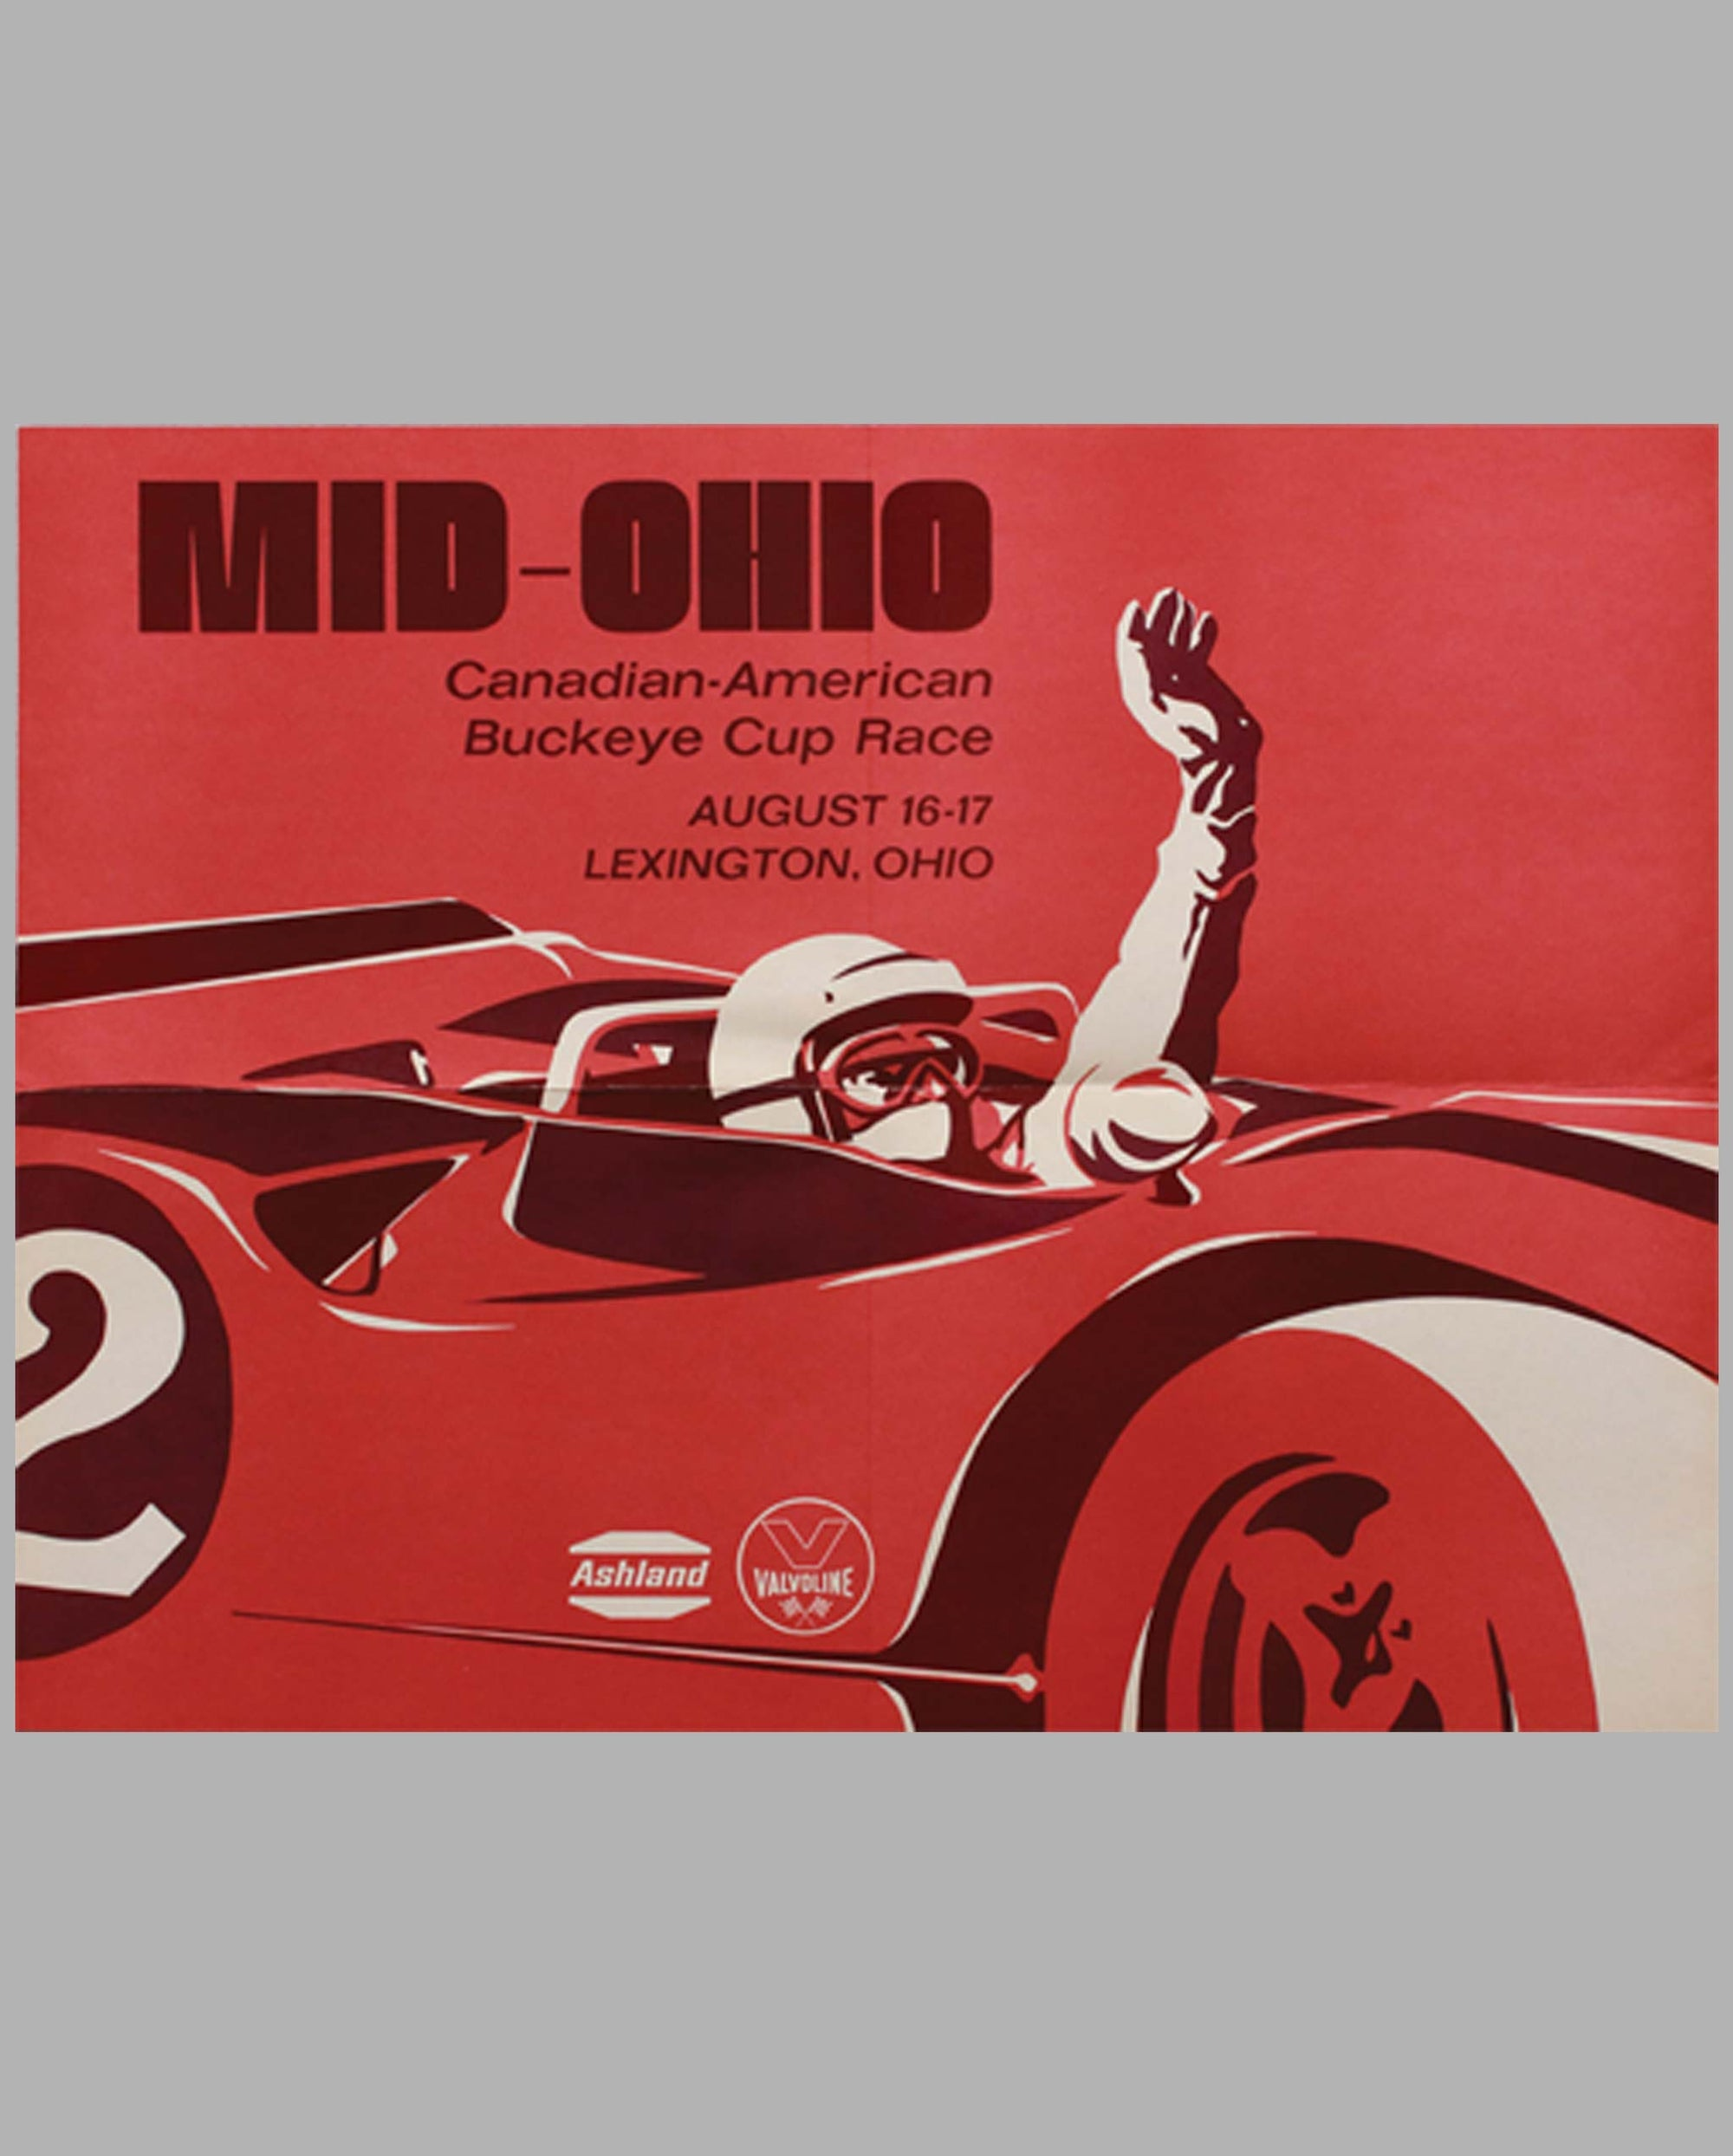 Mid-Ohio Can-Am Buckeye Cup Race 1969 original event poster